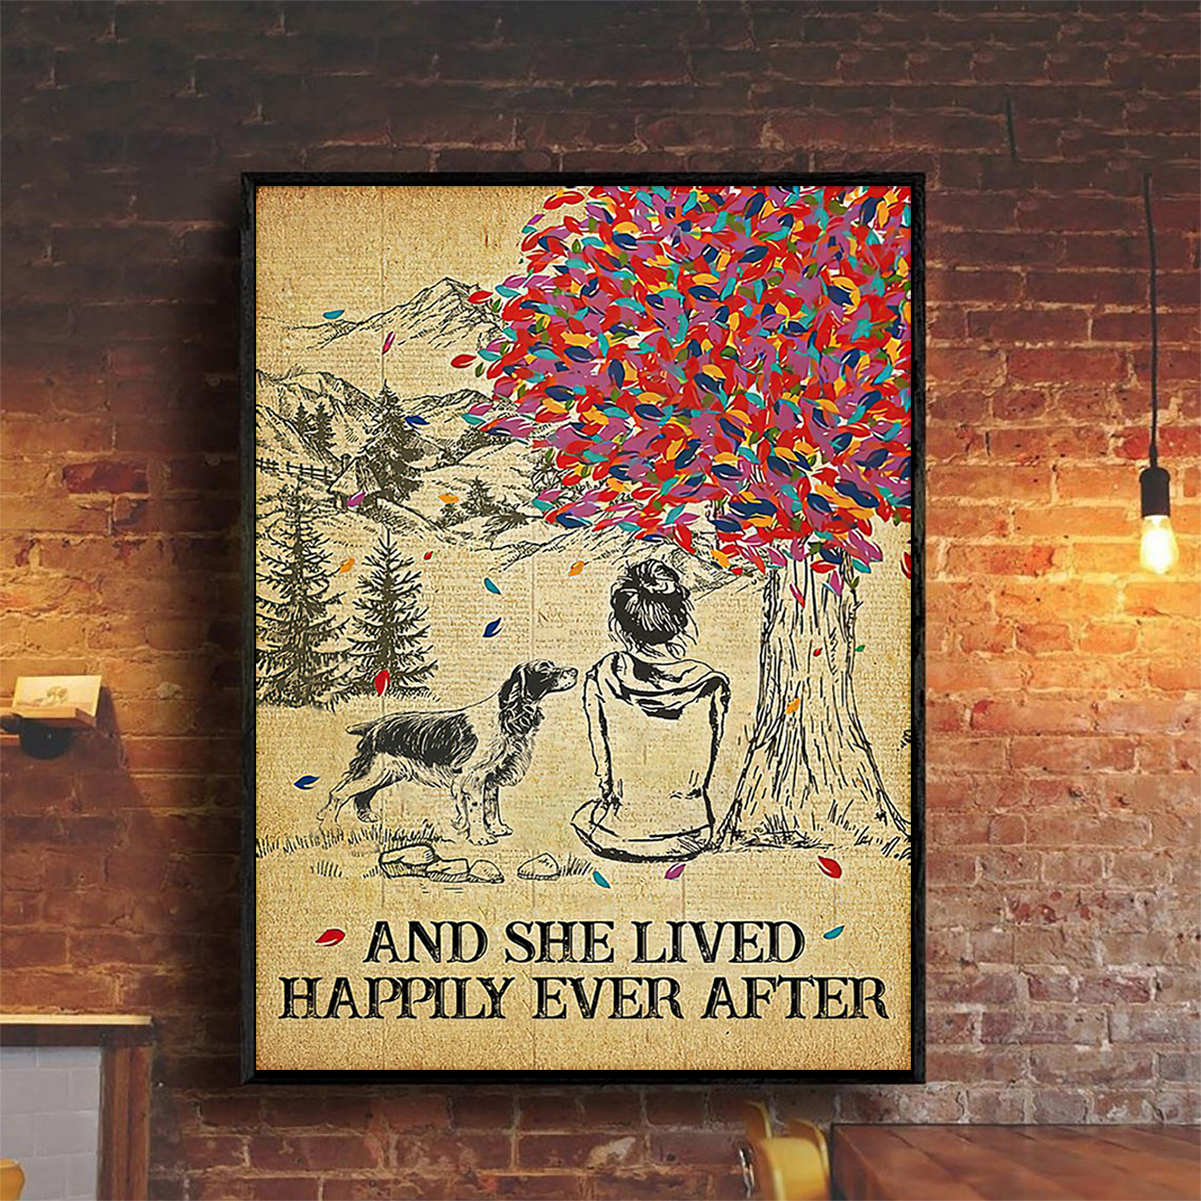 Springer spaniel and she lived happily ever after poster A2